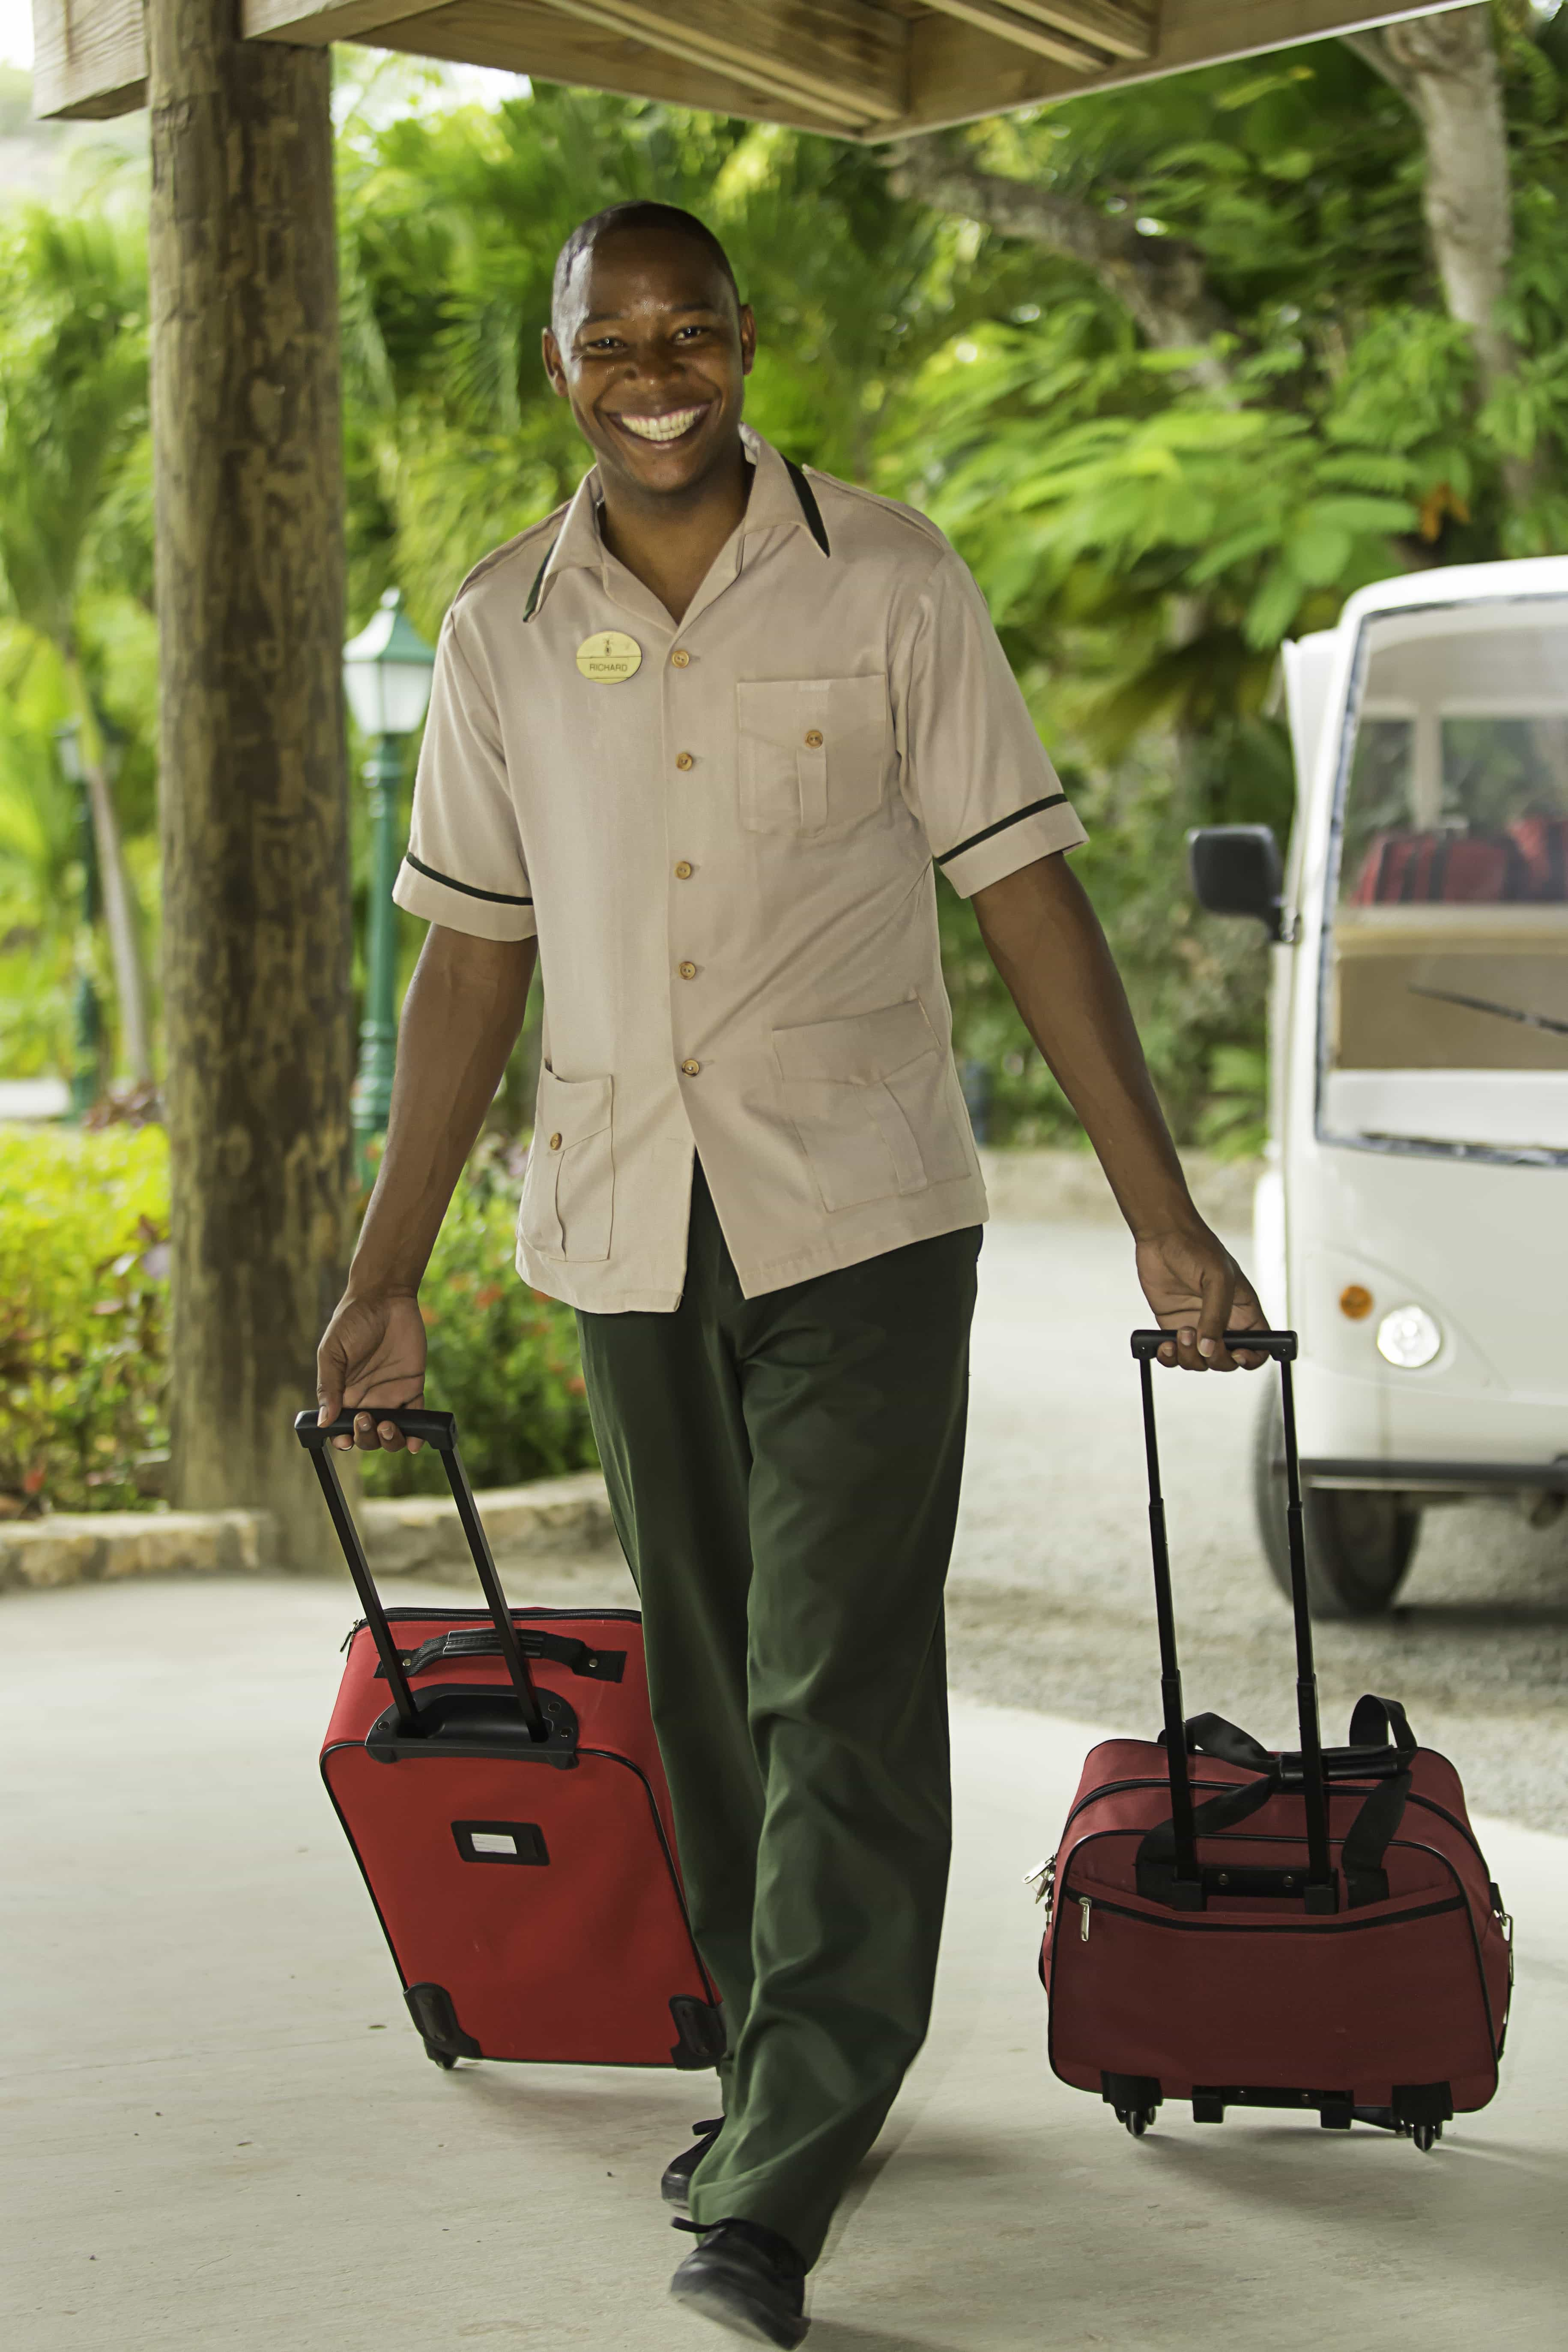 Bellman with luggage